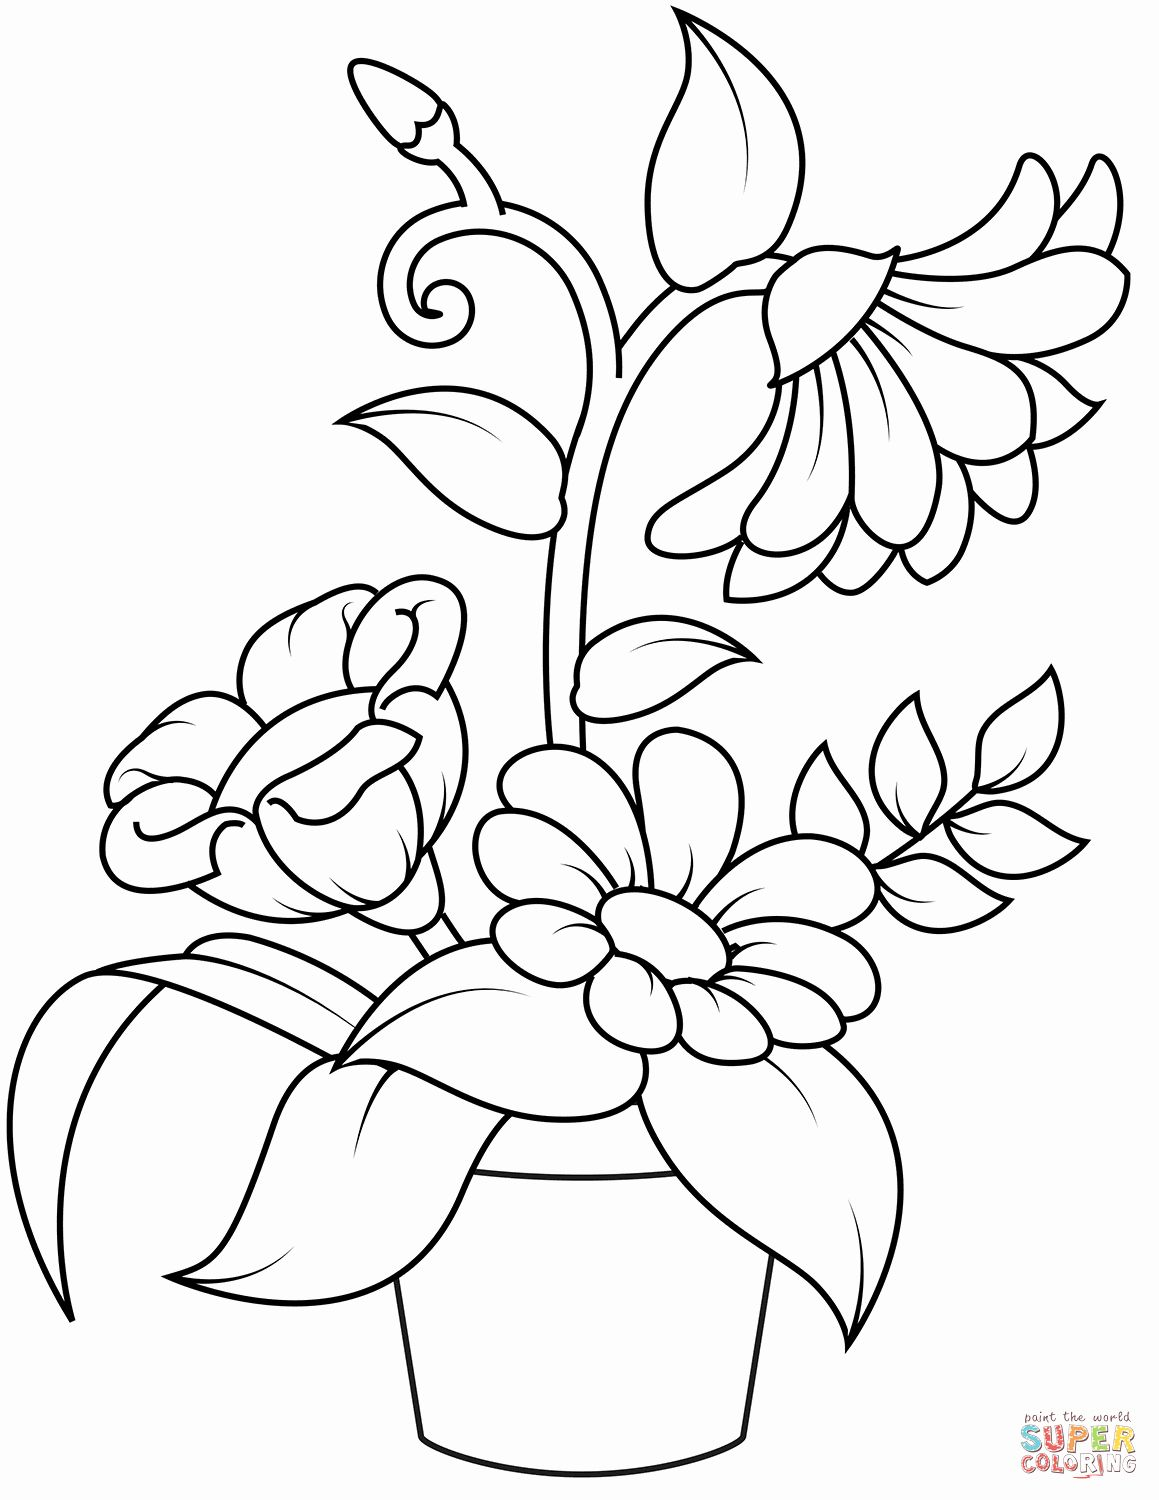 printable simple flower coloring pages best simple flower coloring pages to print coloring flower pages printable simple coloring